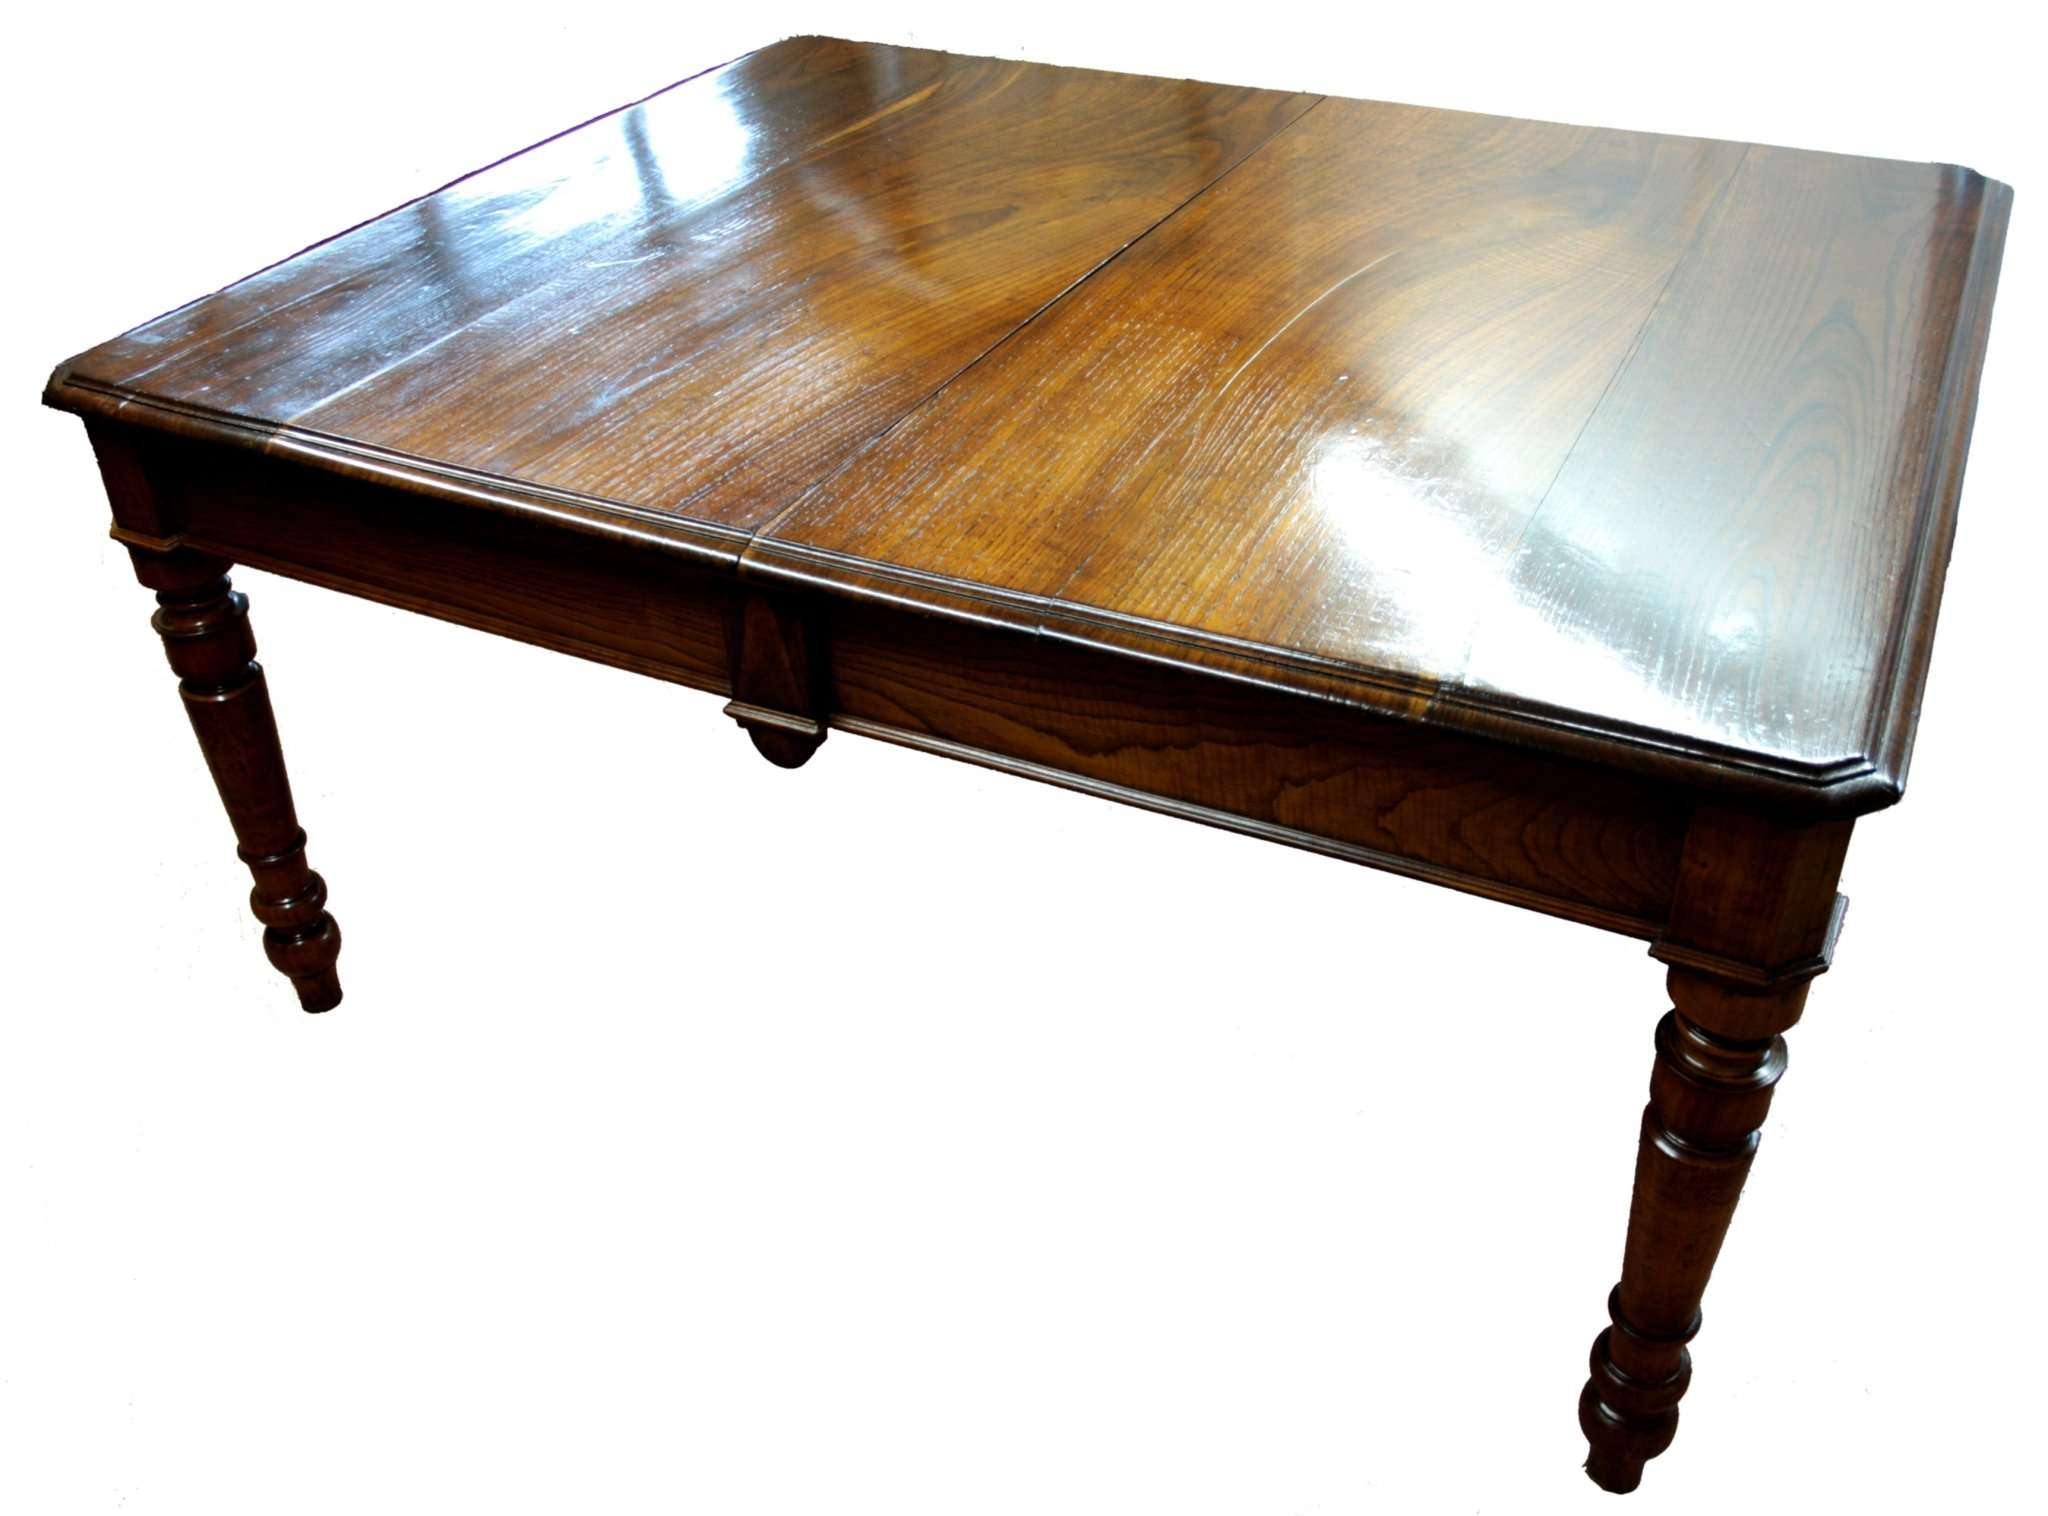 dining table made in 1800 restored cherry and chestnut wood extendable 3 meters restauriraia. Black Bedroom Furniture Sets. Home Design Ideas